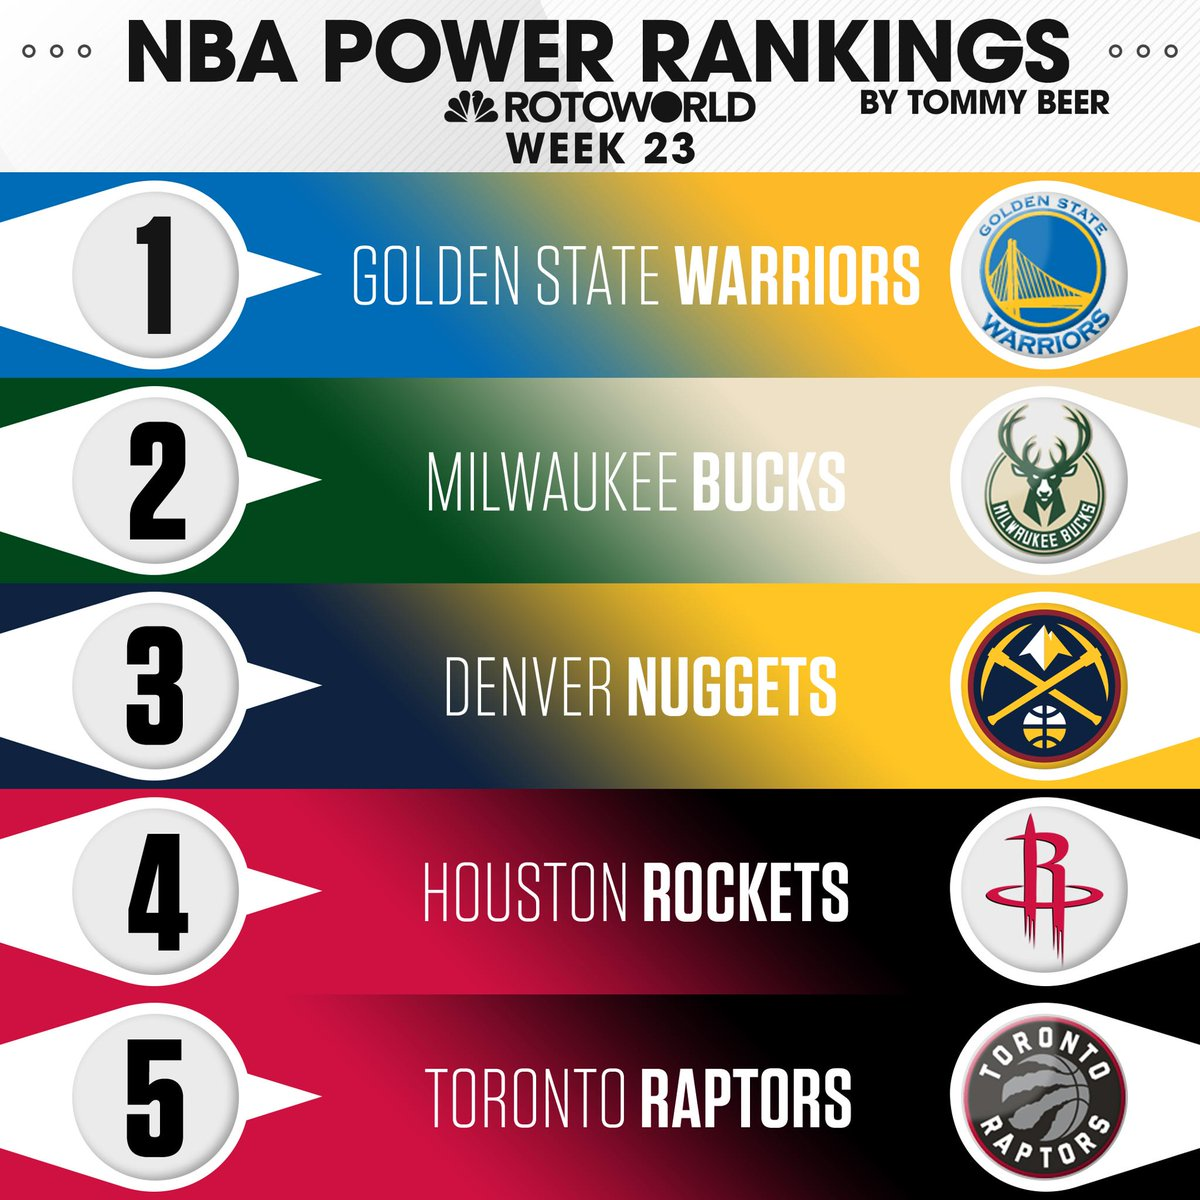 Thanks to their improved defense, the Warriors have righted the ship and are once again atop @TommyBeer's NBA Power Rankings.  Full rankings: http://bit.ly/2Fl4gpy